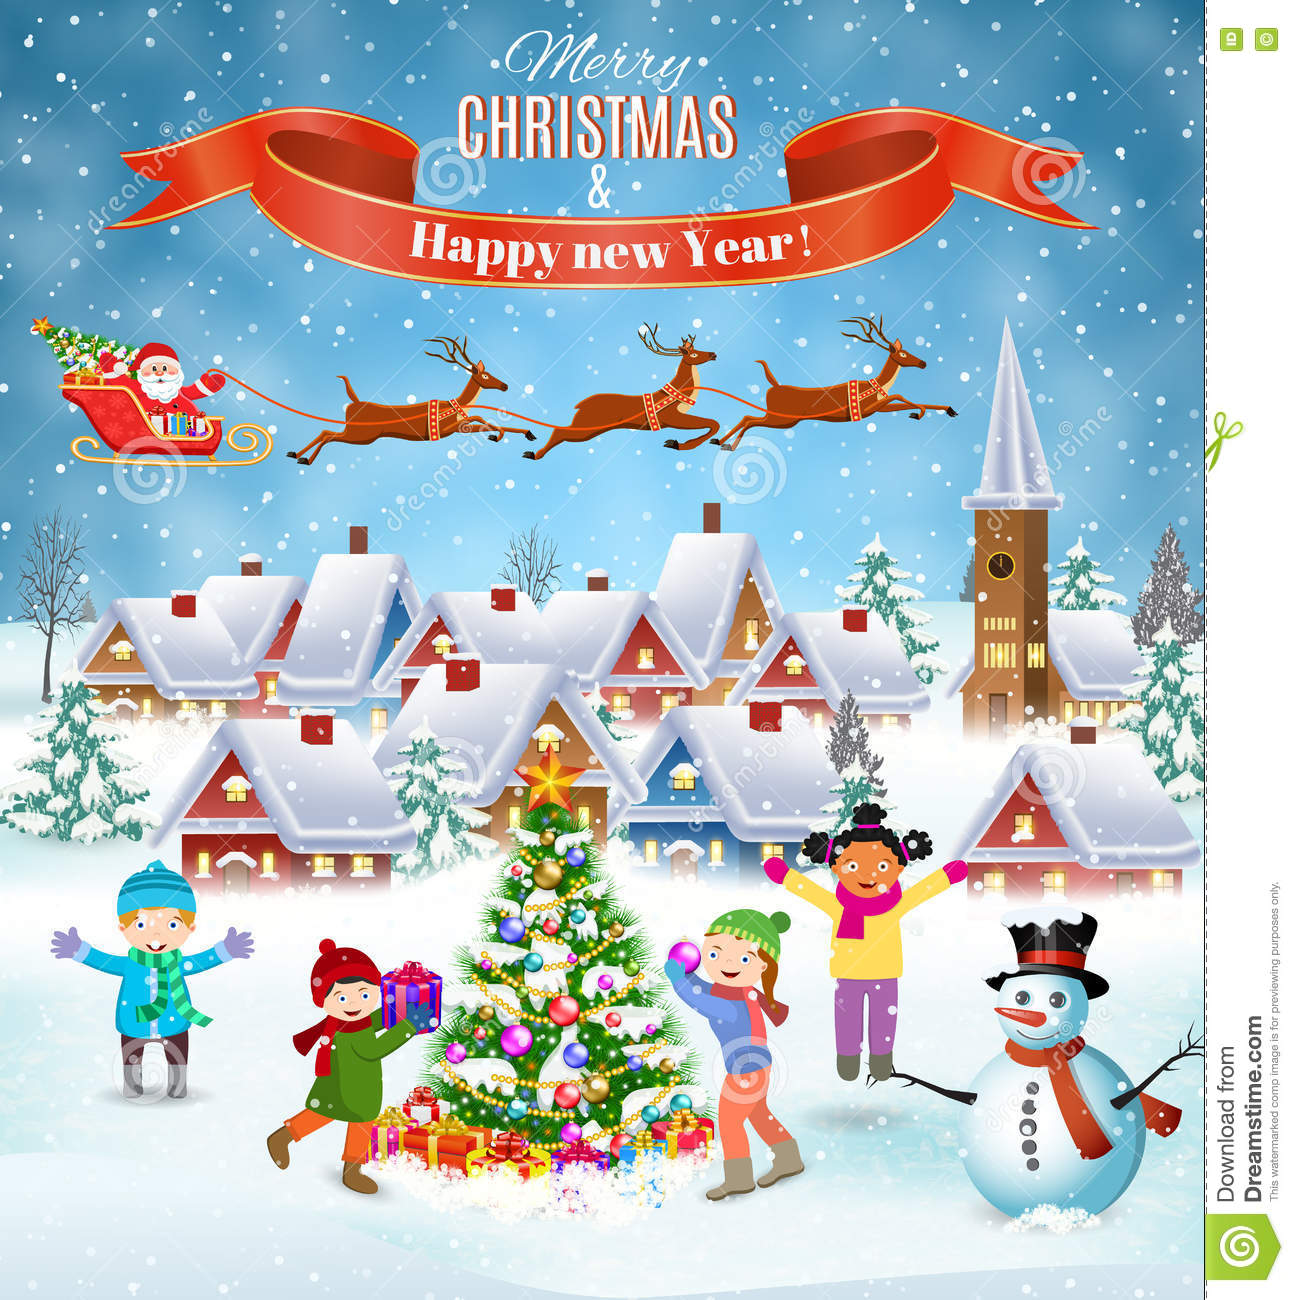 happy new year and merry christmas landscape card design winter fun kids decorating a christmas tree winter holidays santa claus with deers in sky above - Fun Things To Do On Christmas Eve